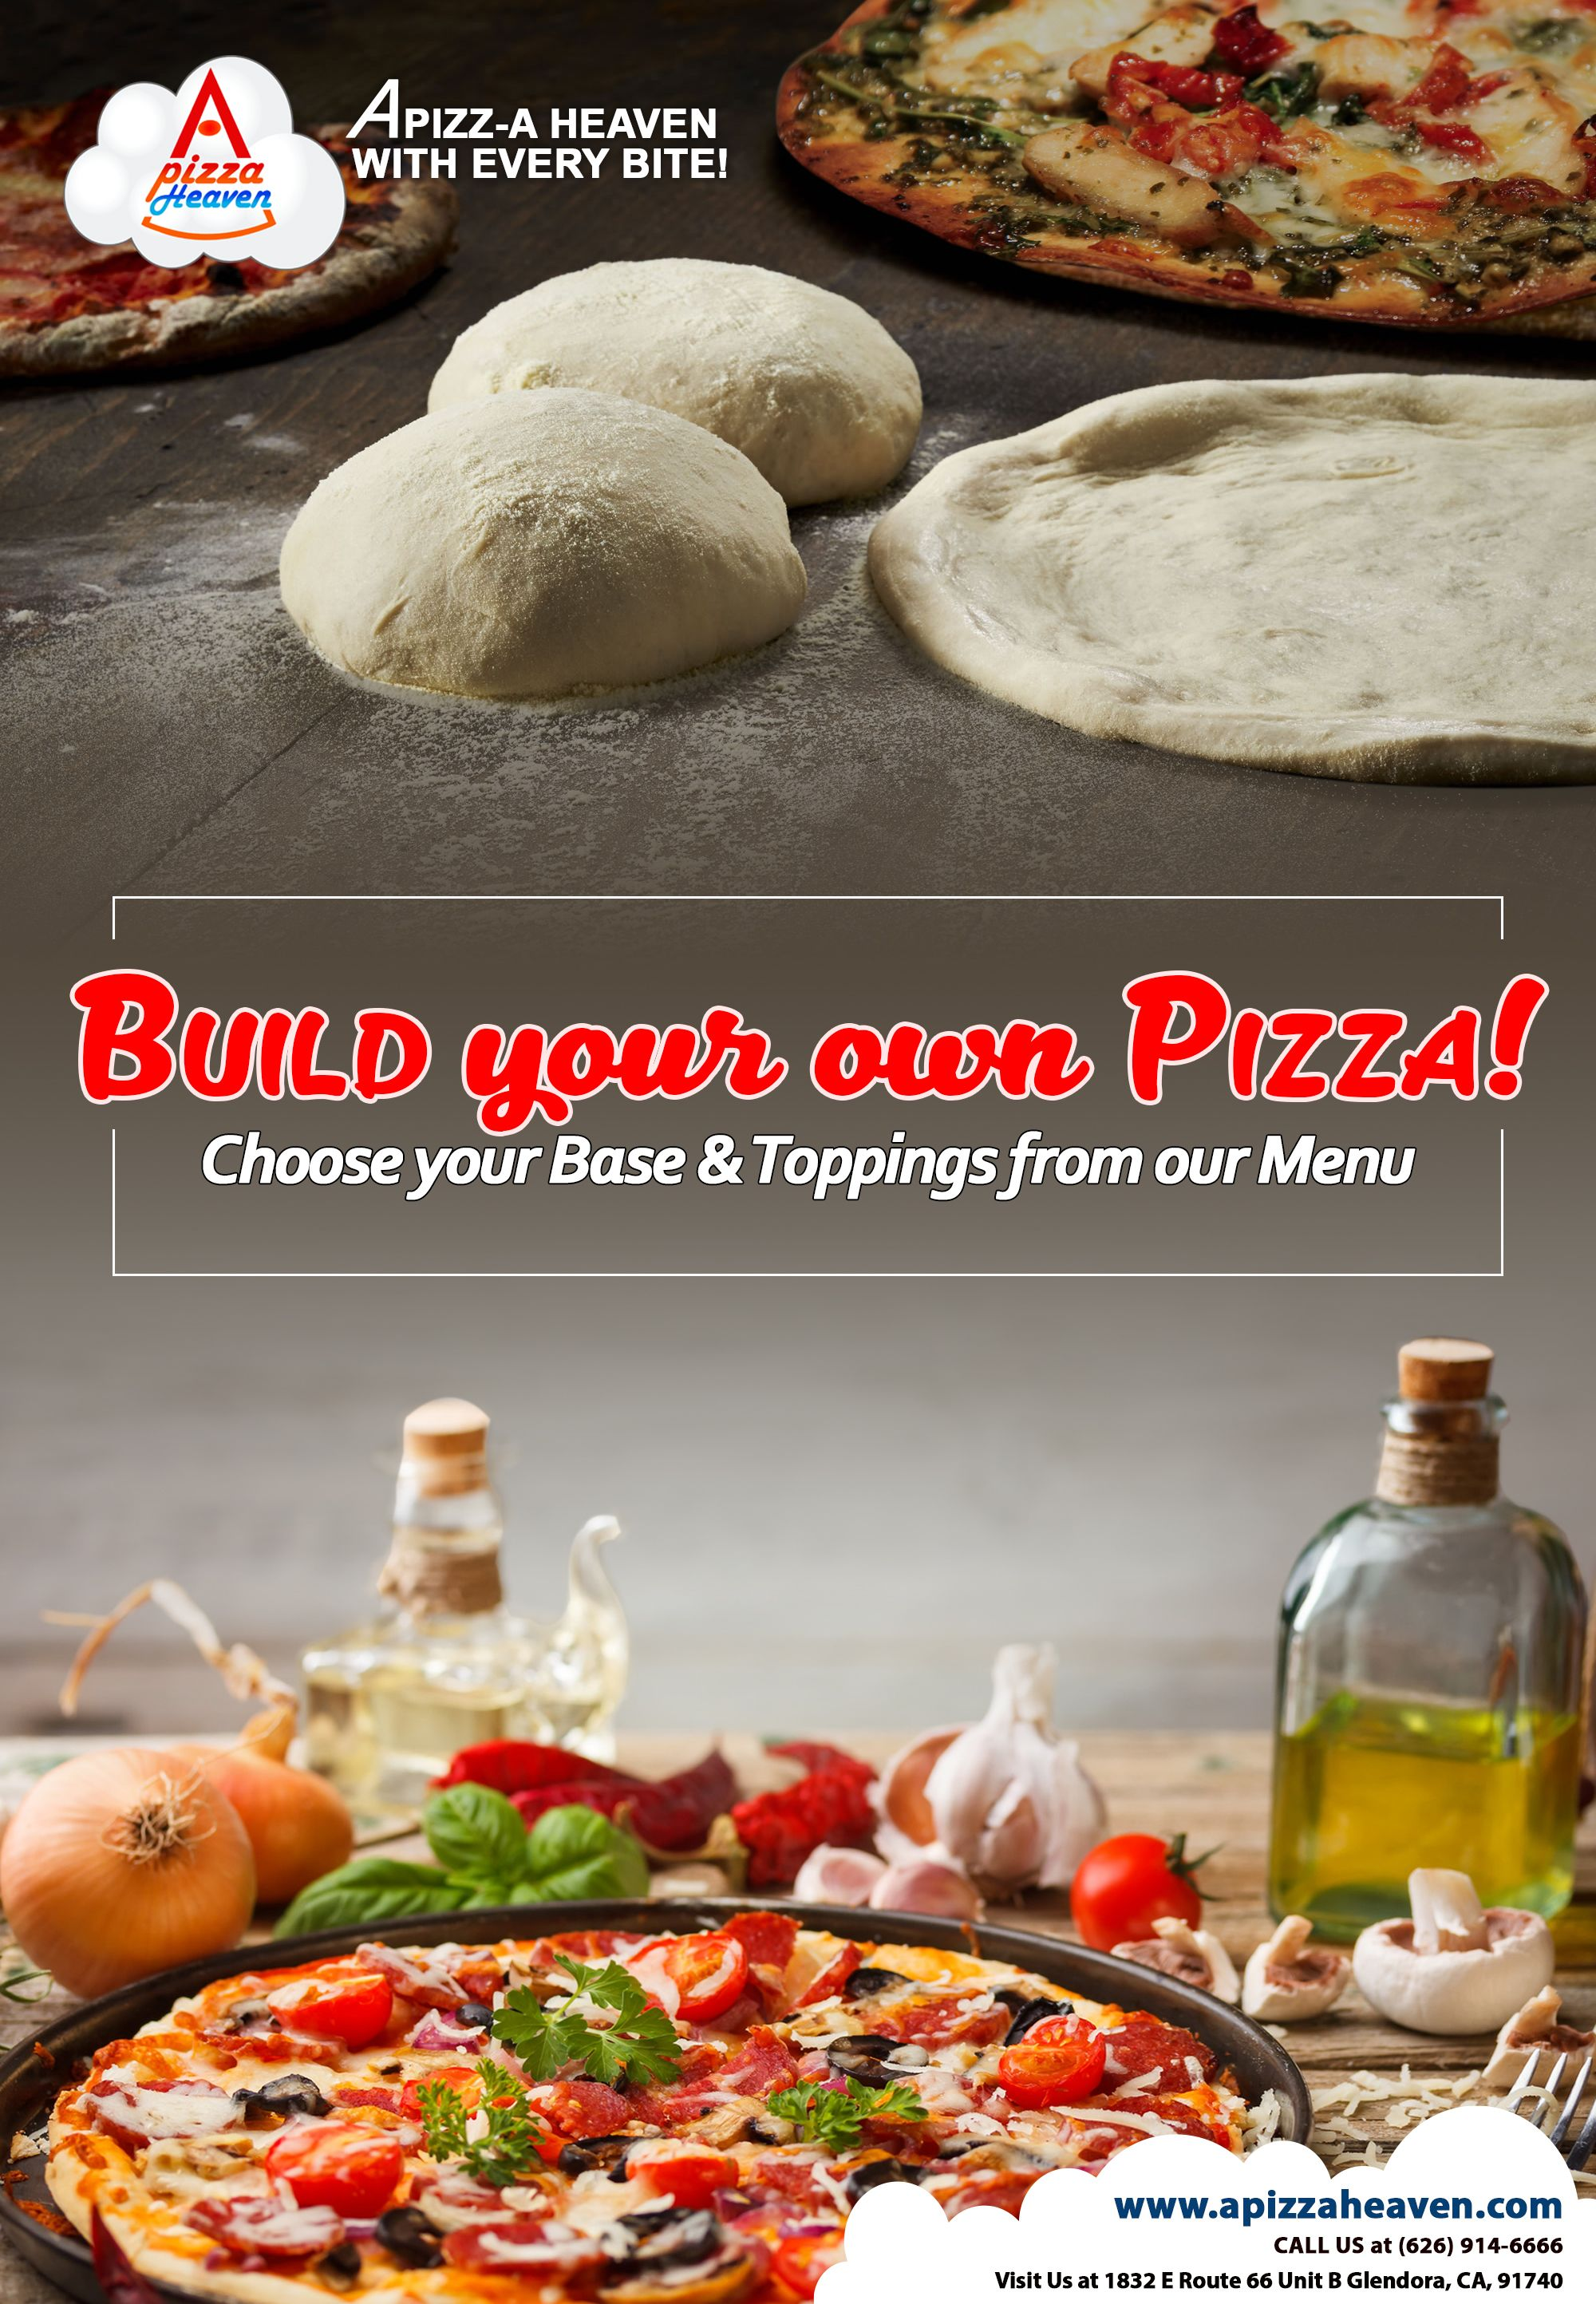 build your own pizza! check our menu at: apizzaheaven and order